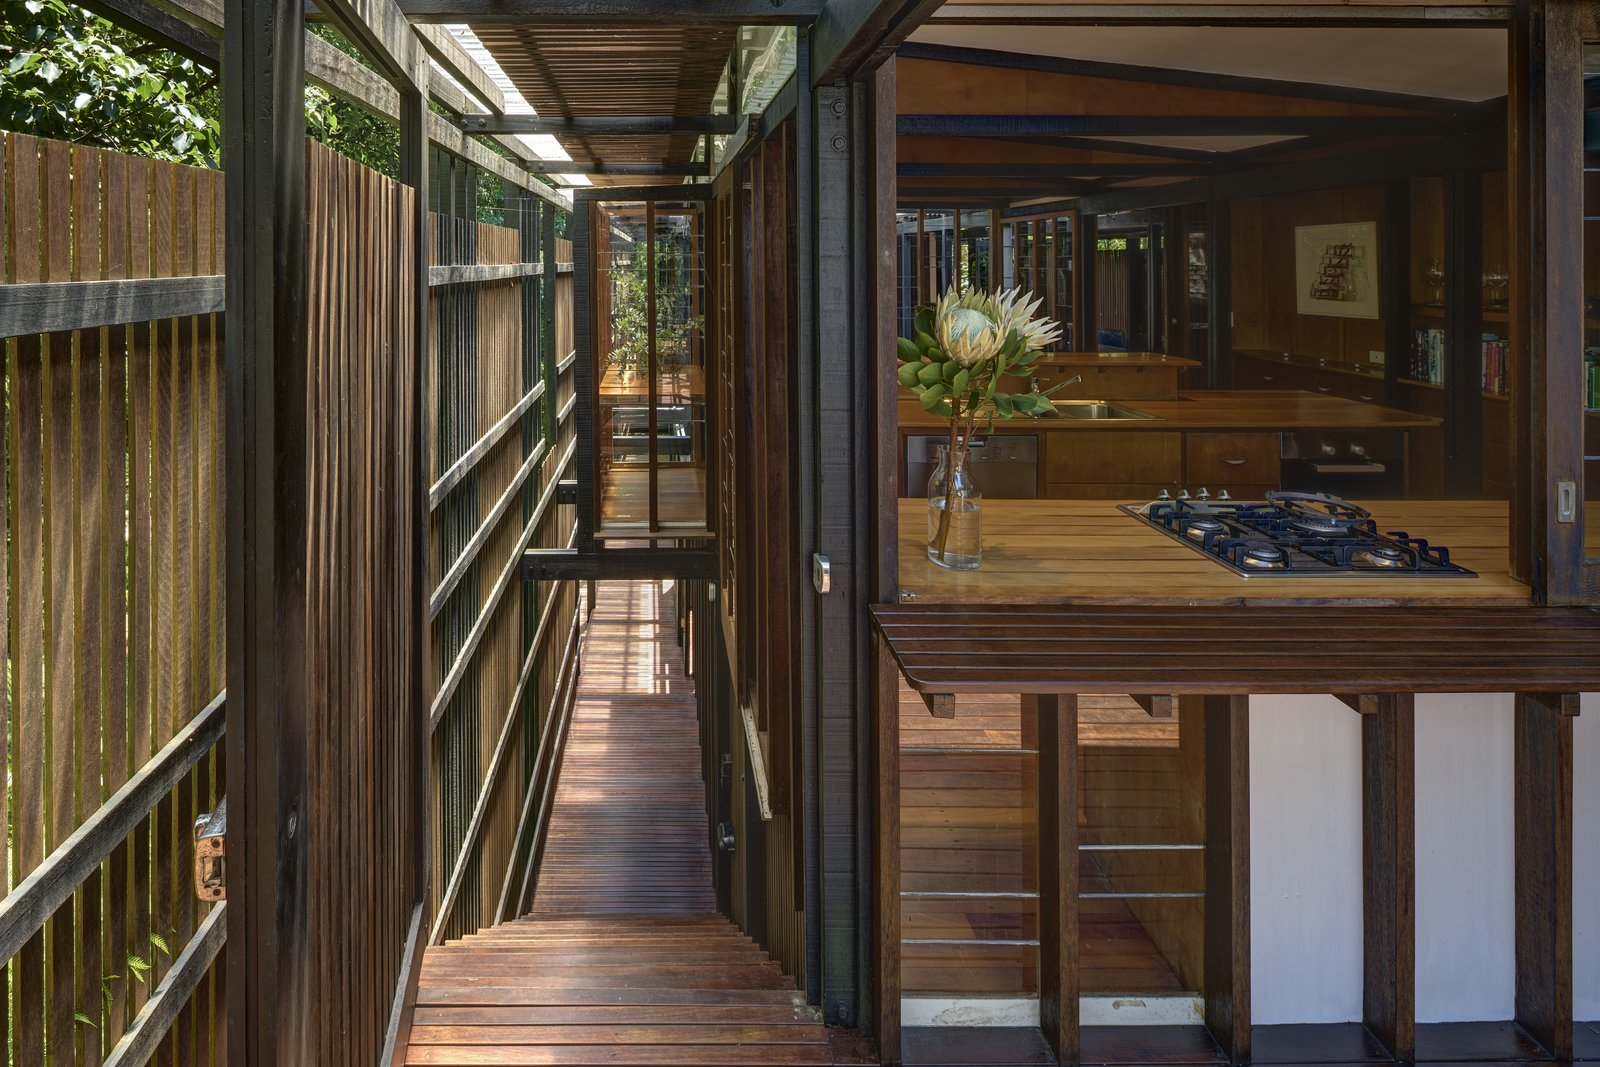 A hallway that runs the length of each pavilion helps improve circulation, and provides storage areas.